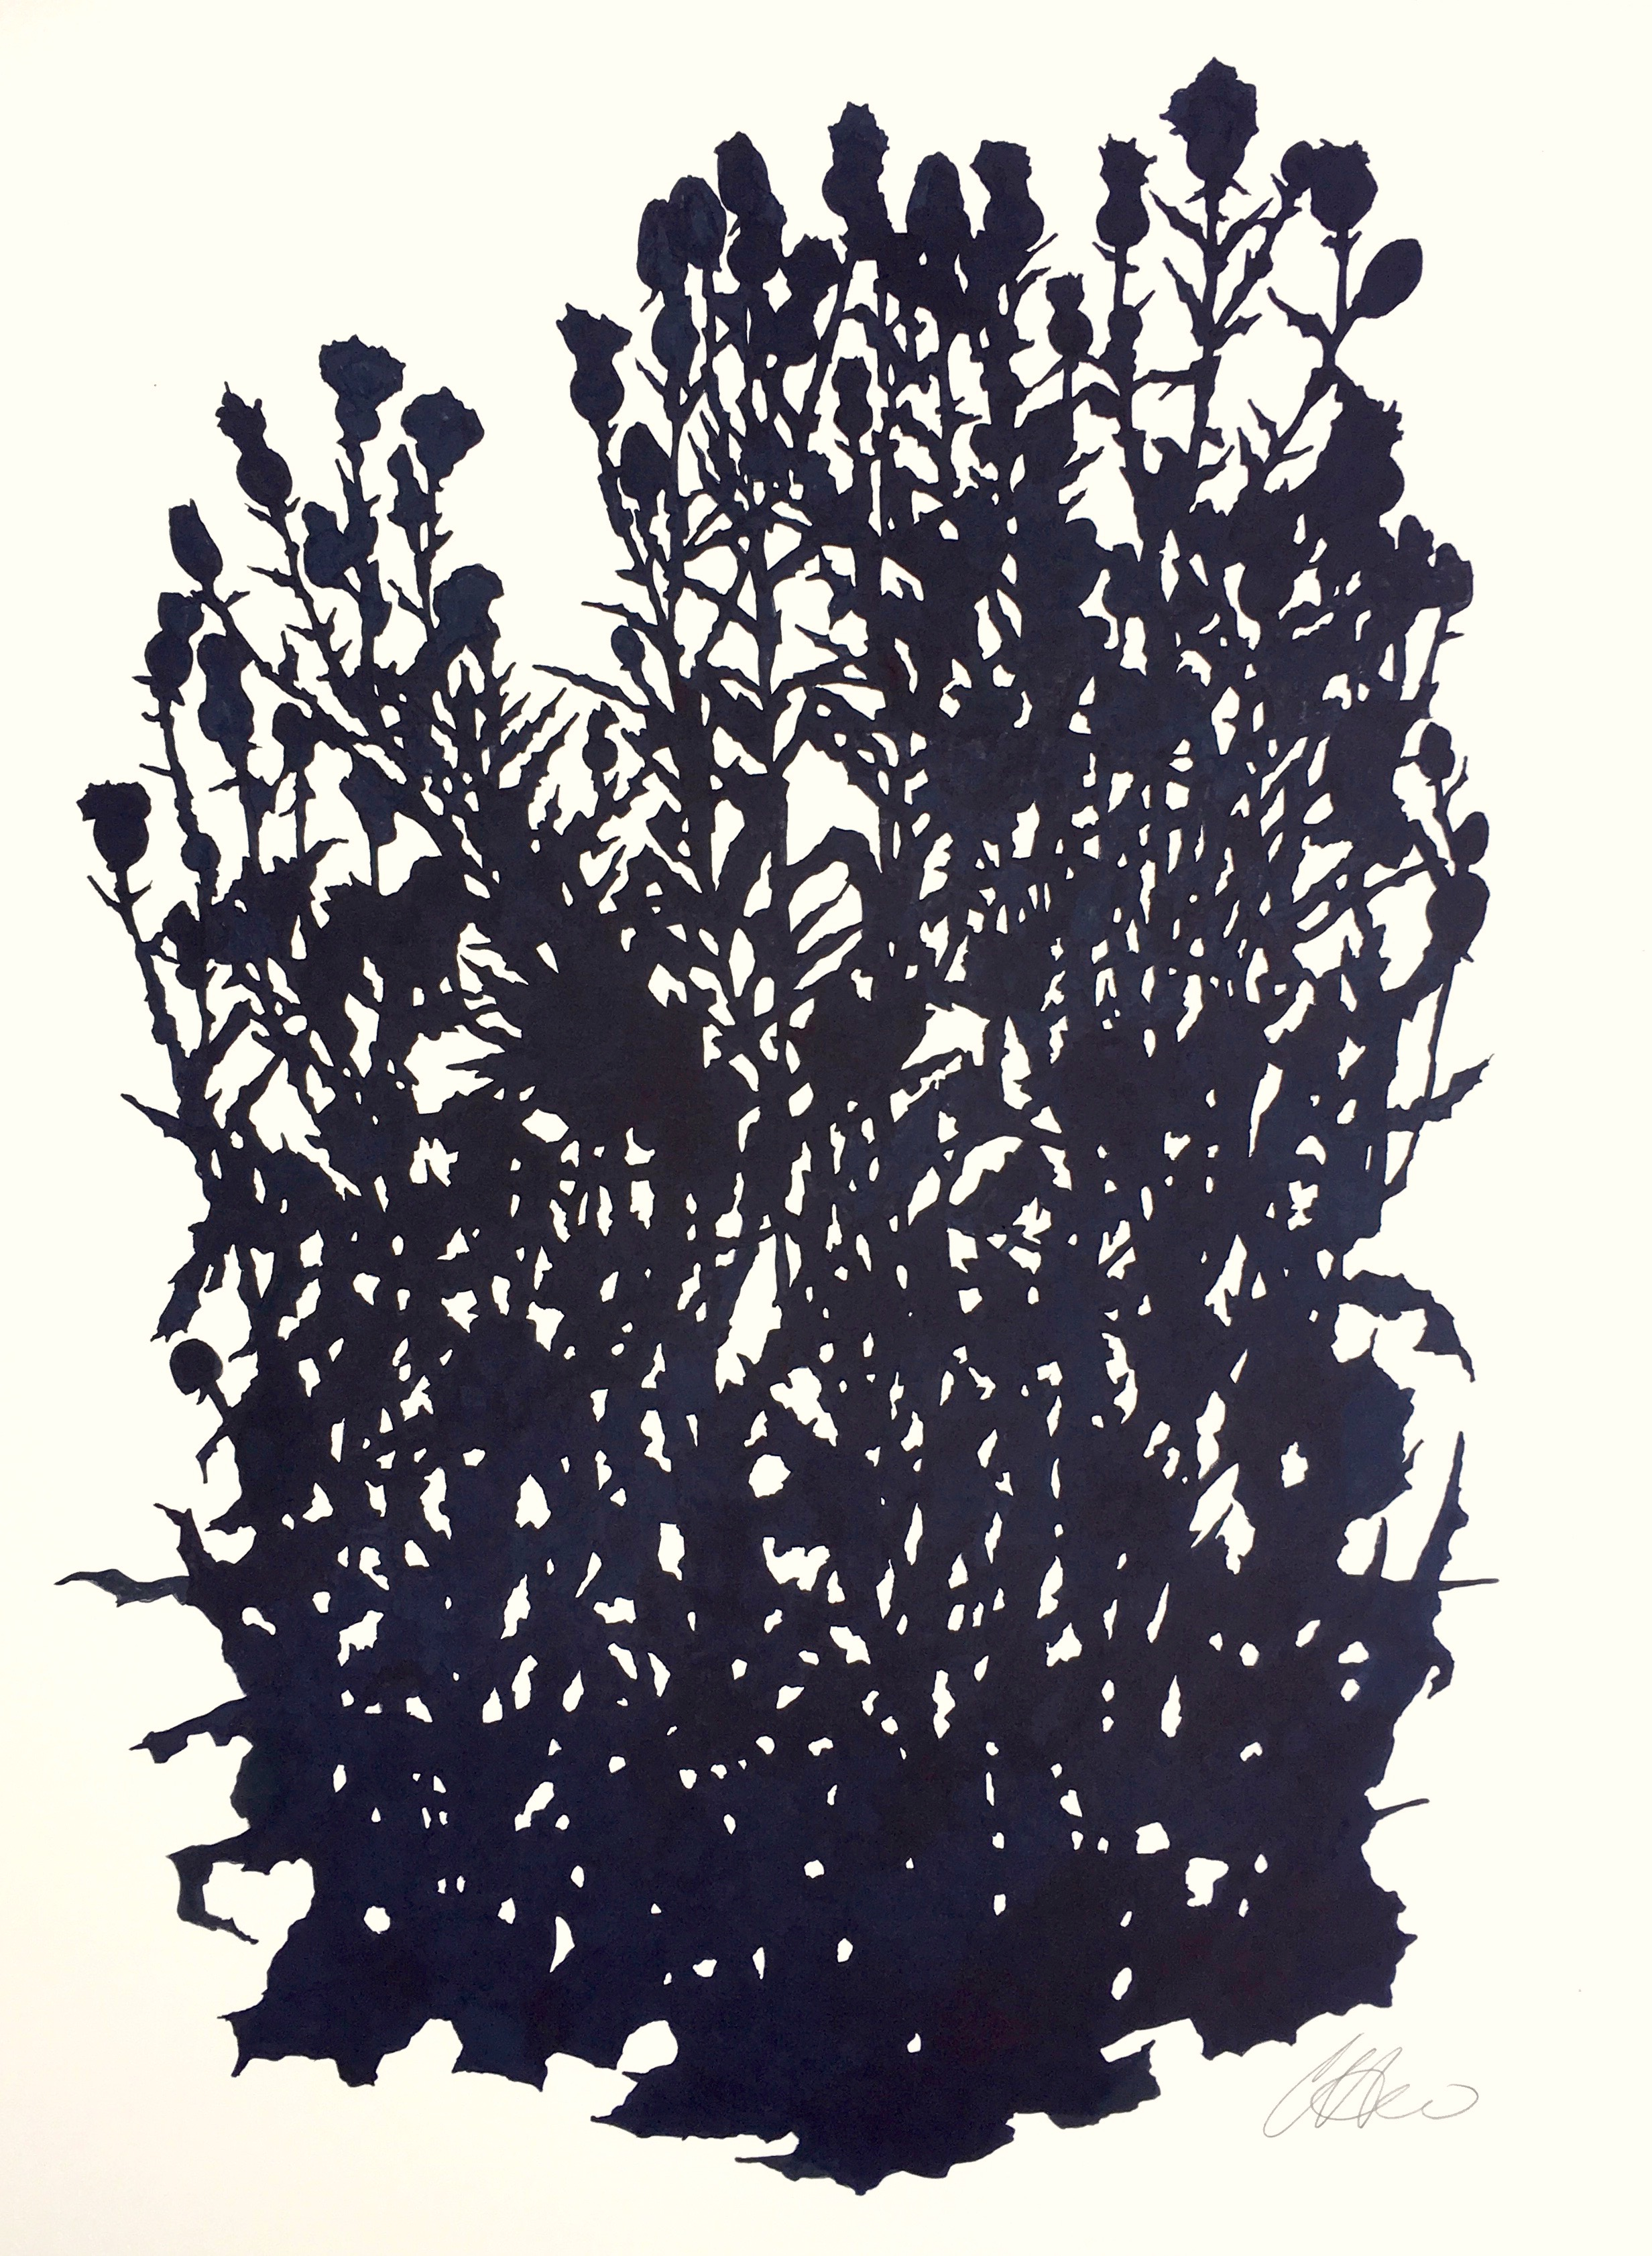 Thistle Study, Matfield Green 2 (August), ink on paper, 30 x 22.5""